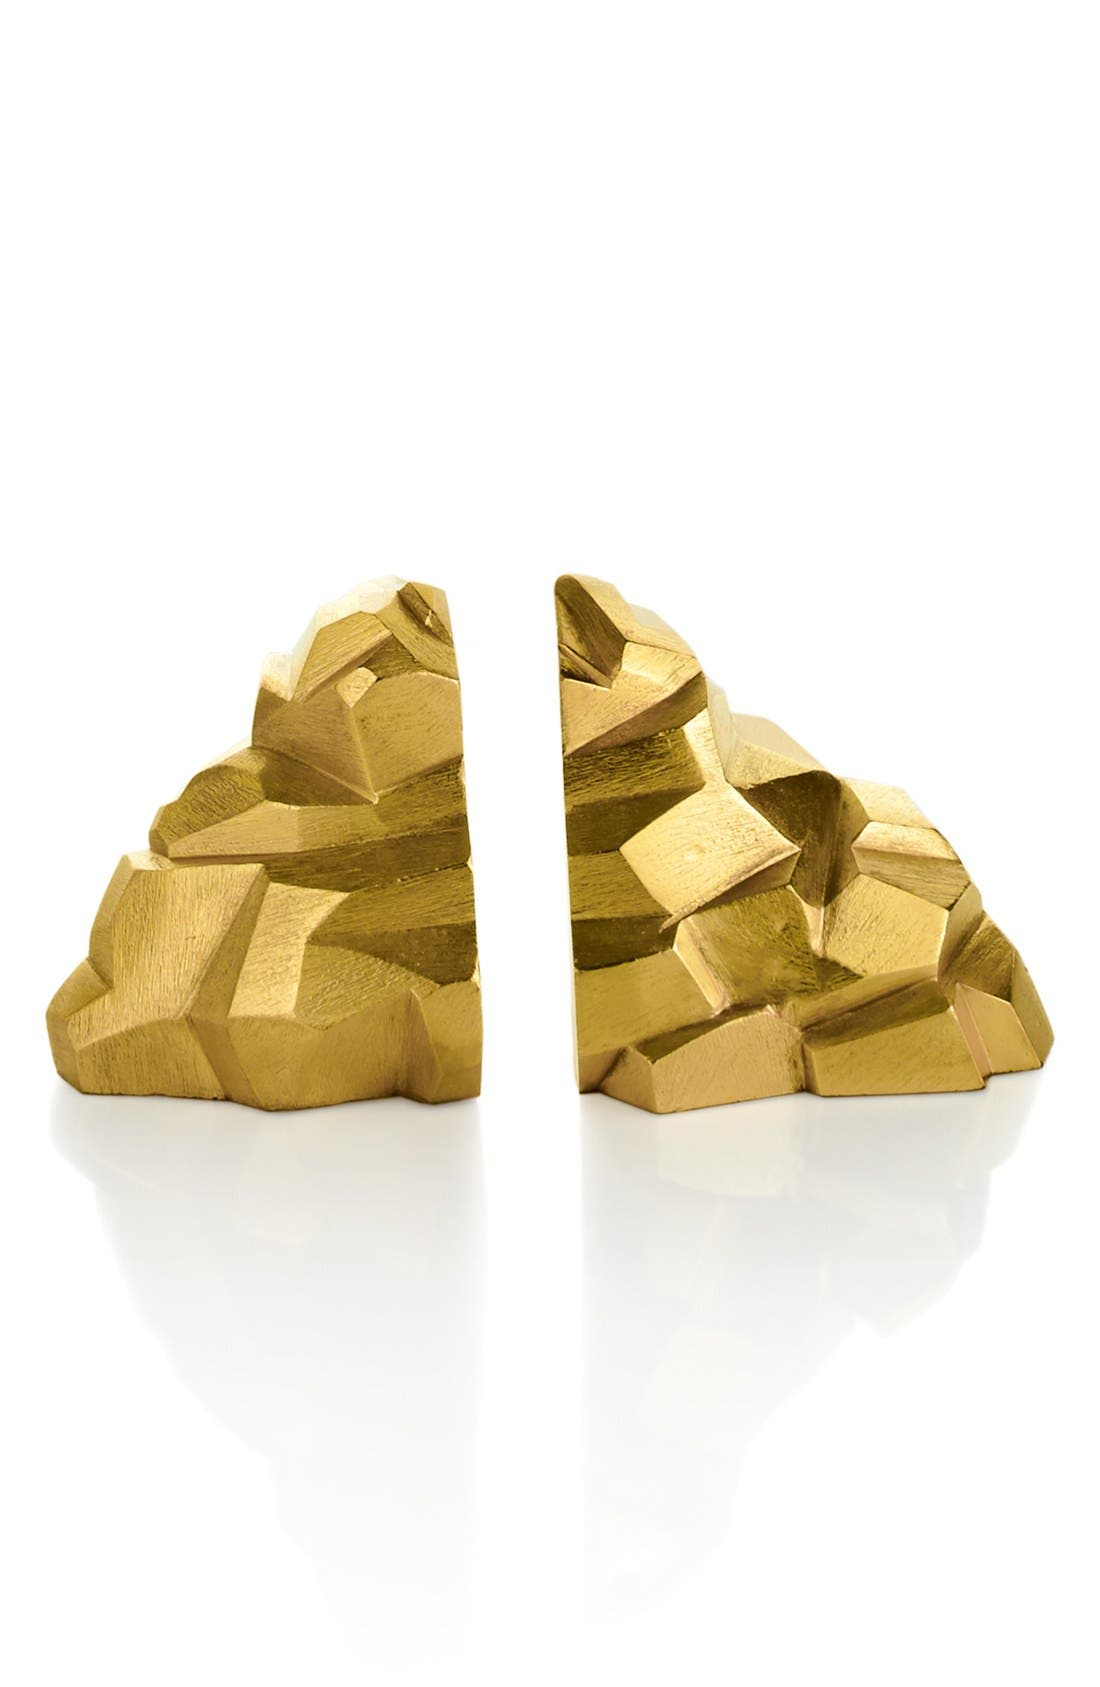 'Rock' Bookends,                         Main,                         color, Gold